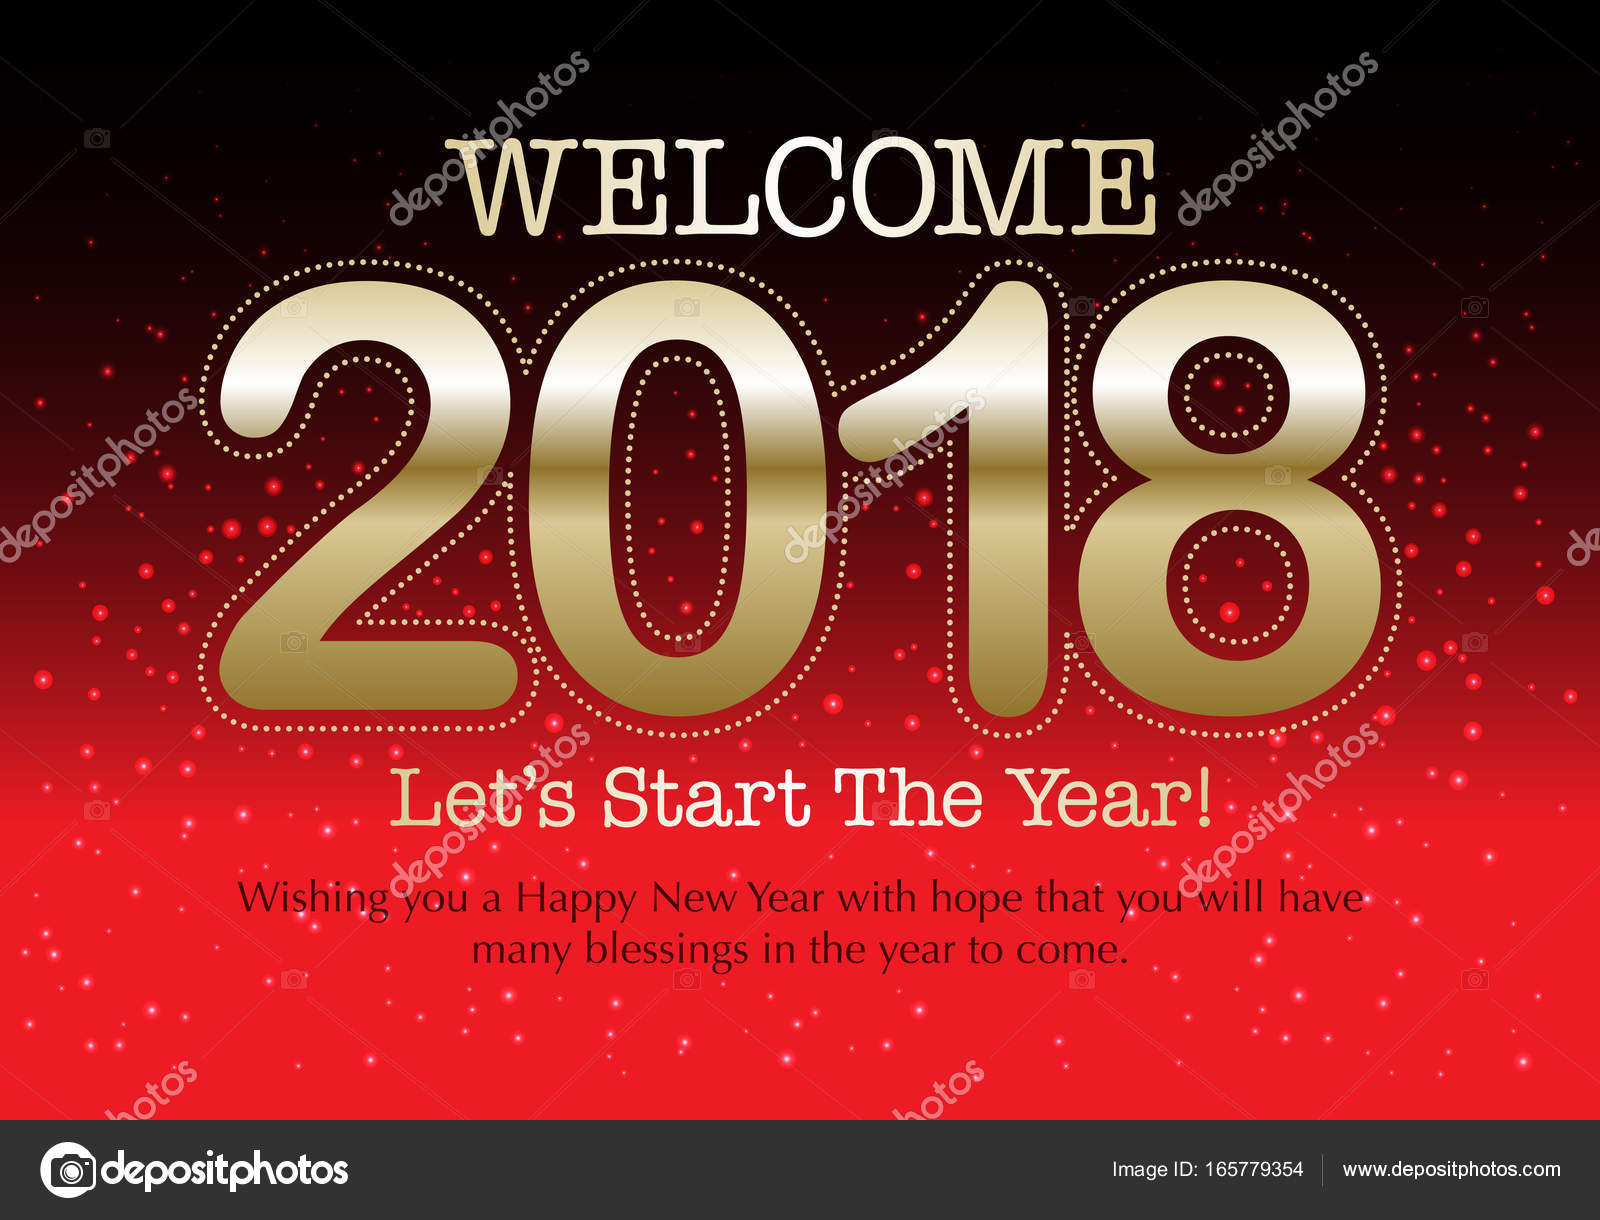 happy new year 2018 wish you all the best as always in this coming new year vector by dolphfynlow